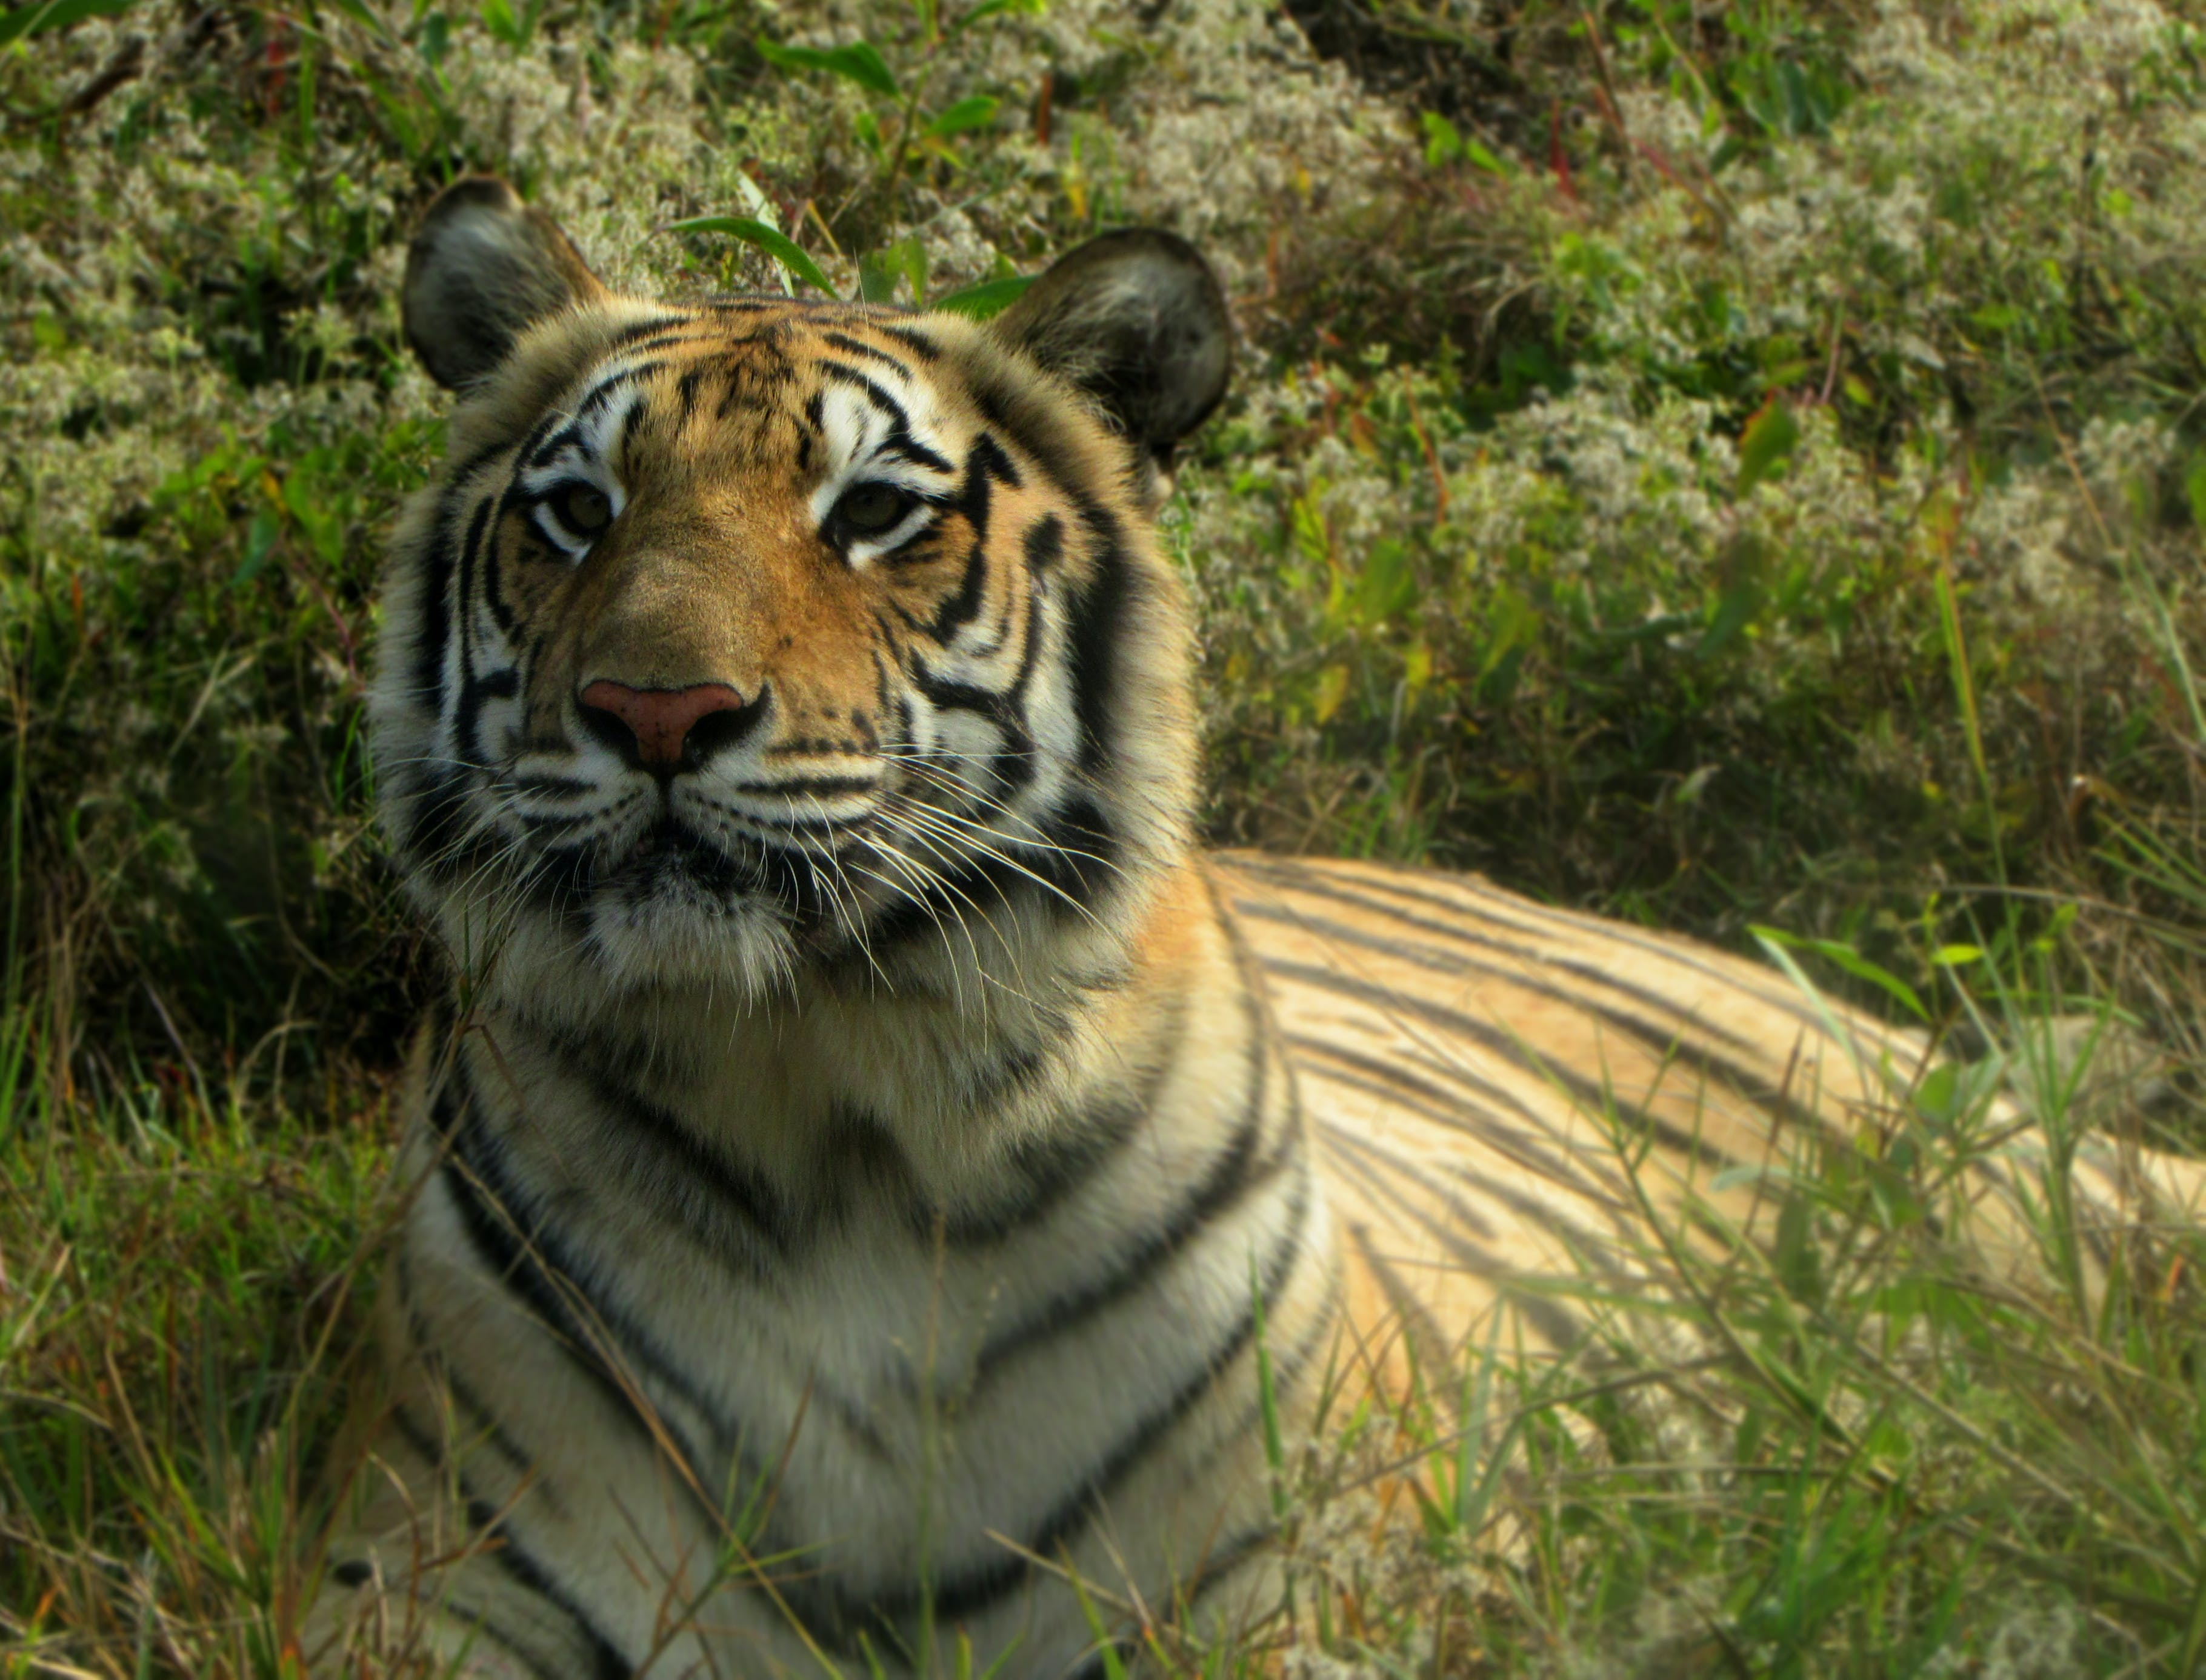 Free stock photo of The Royal Bengal Tiger